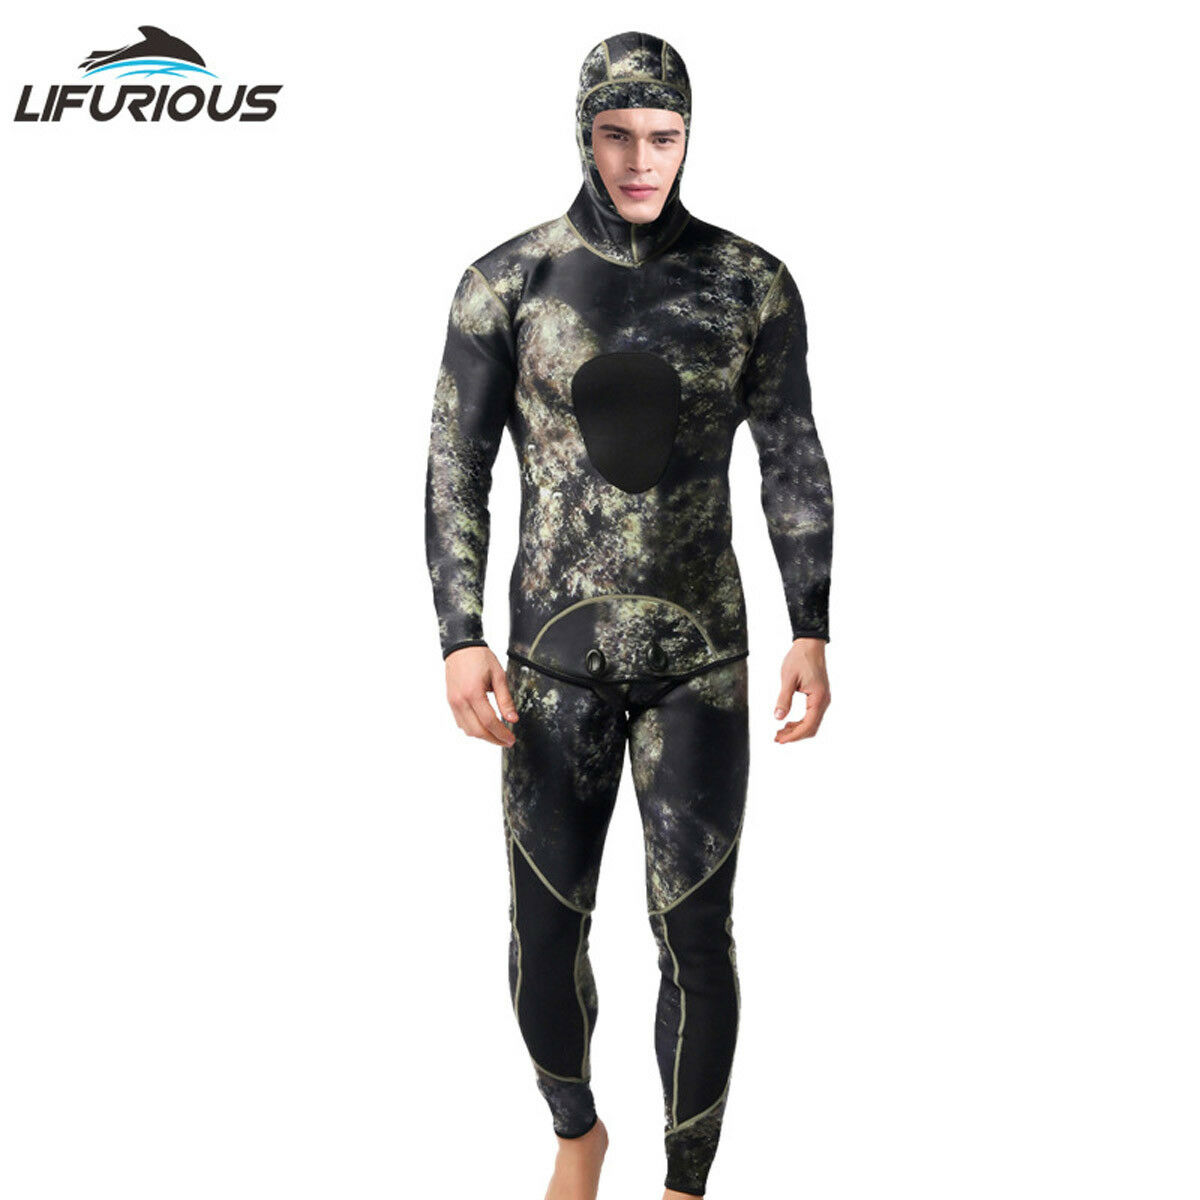 3MM Neoprene Scuba Diving Wetsuit Camouflage Thermal Sea Surfing Diver  Suit  hot limited edition